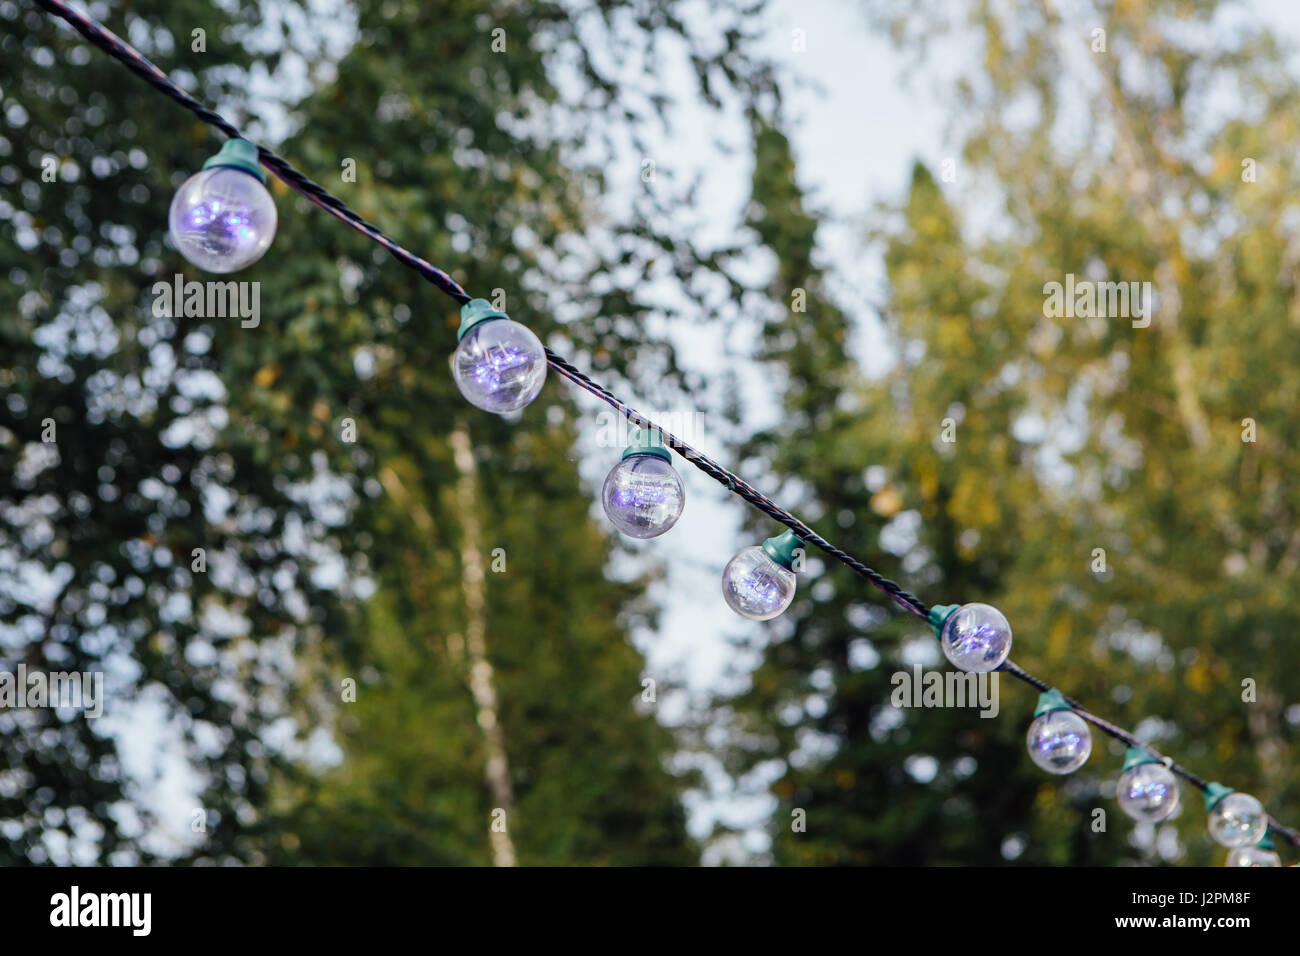 Decorative outdoor string lights hanging on tree in the garden at decorative outdoor string lights hanging on tree in the garden at day time aloadofball Choice Image